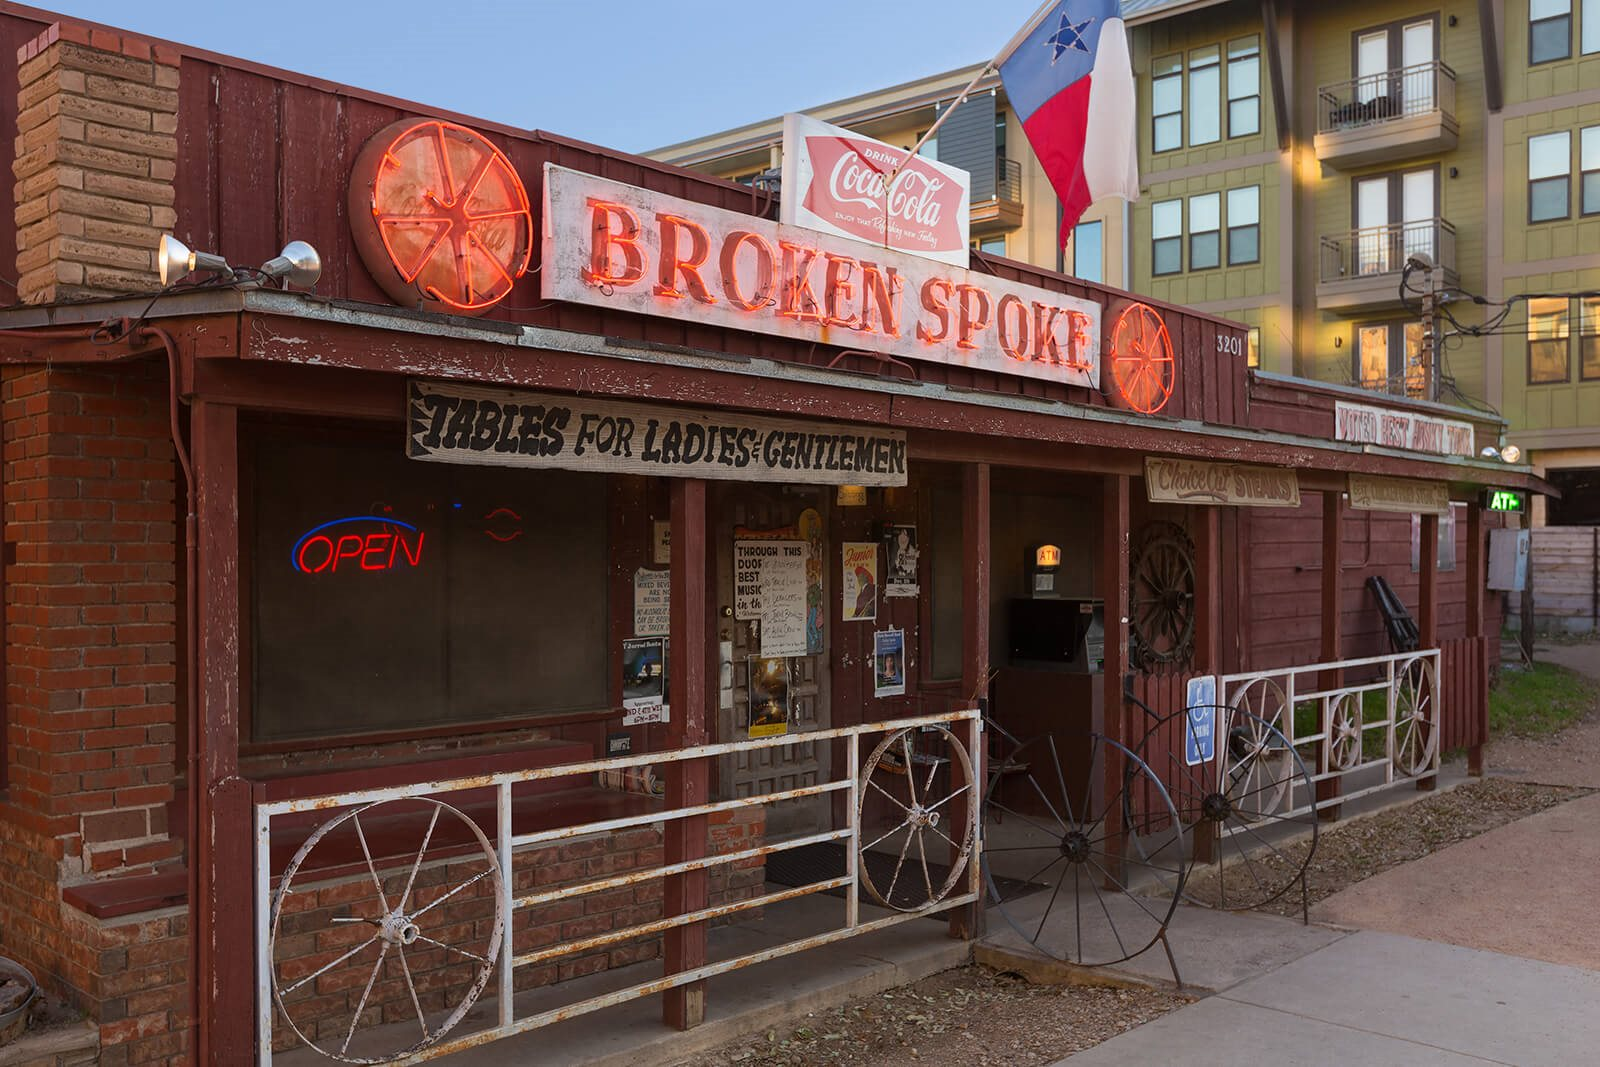 Close to Broken Spoke at Windsor South Lamar, 809 S Lamar Blvd, TX